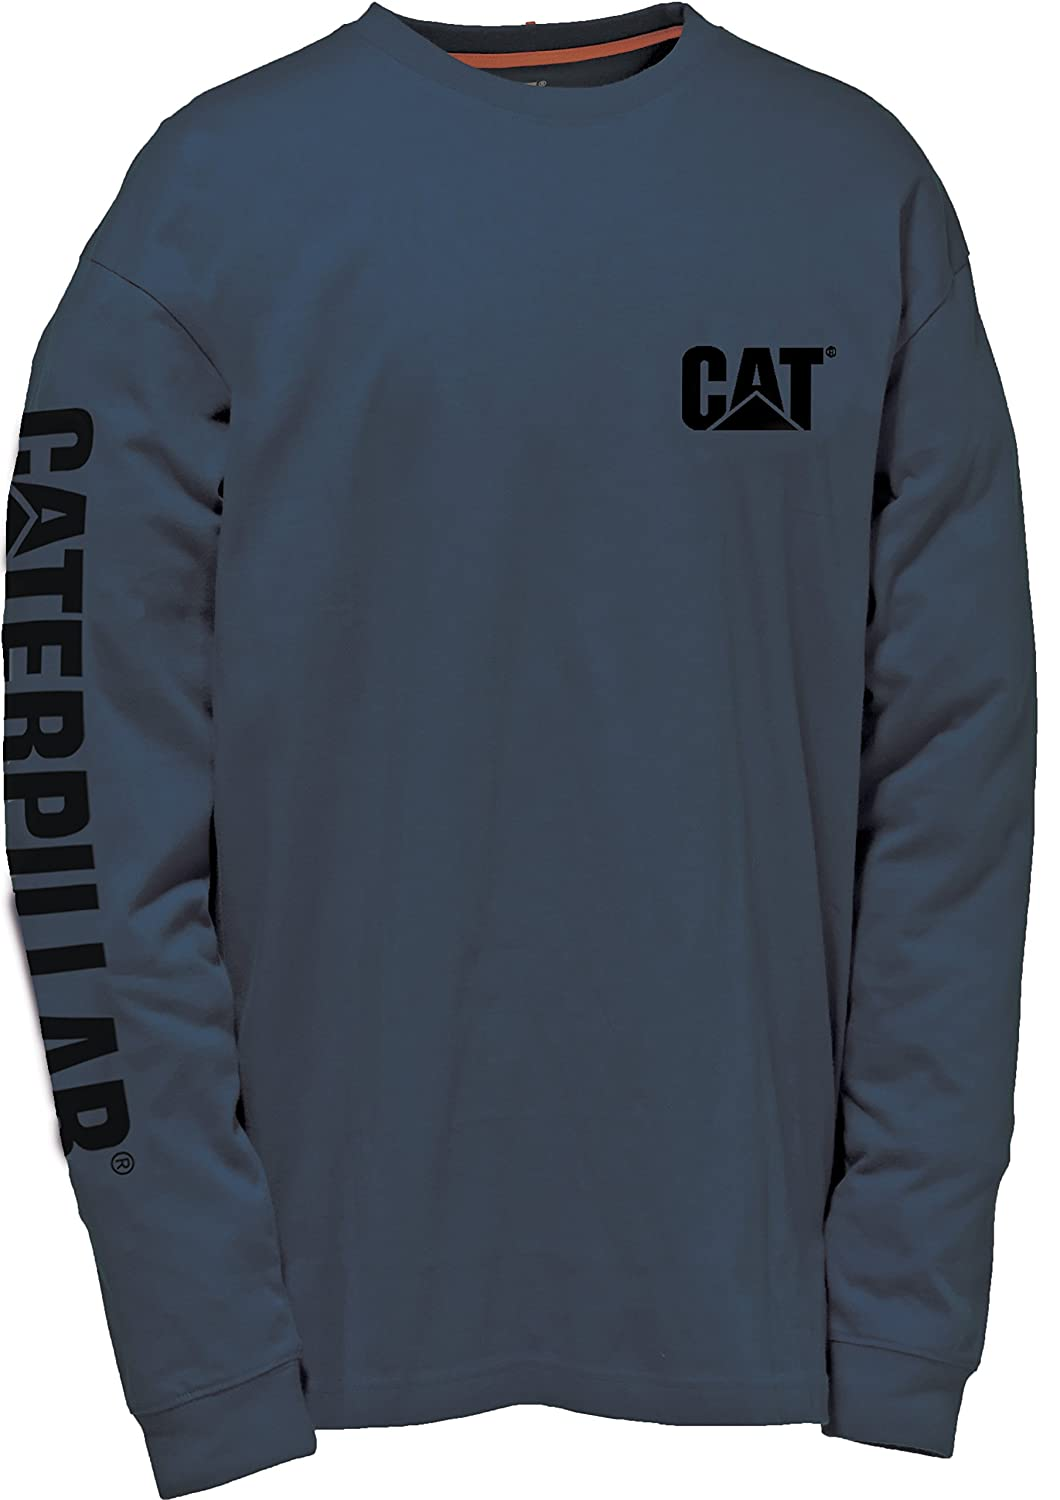 Caterpillar Trademark Banner Long Sleeve T-Shirt Lavoro Uomo